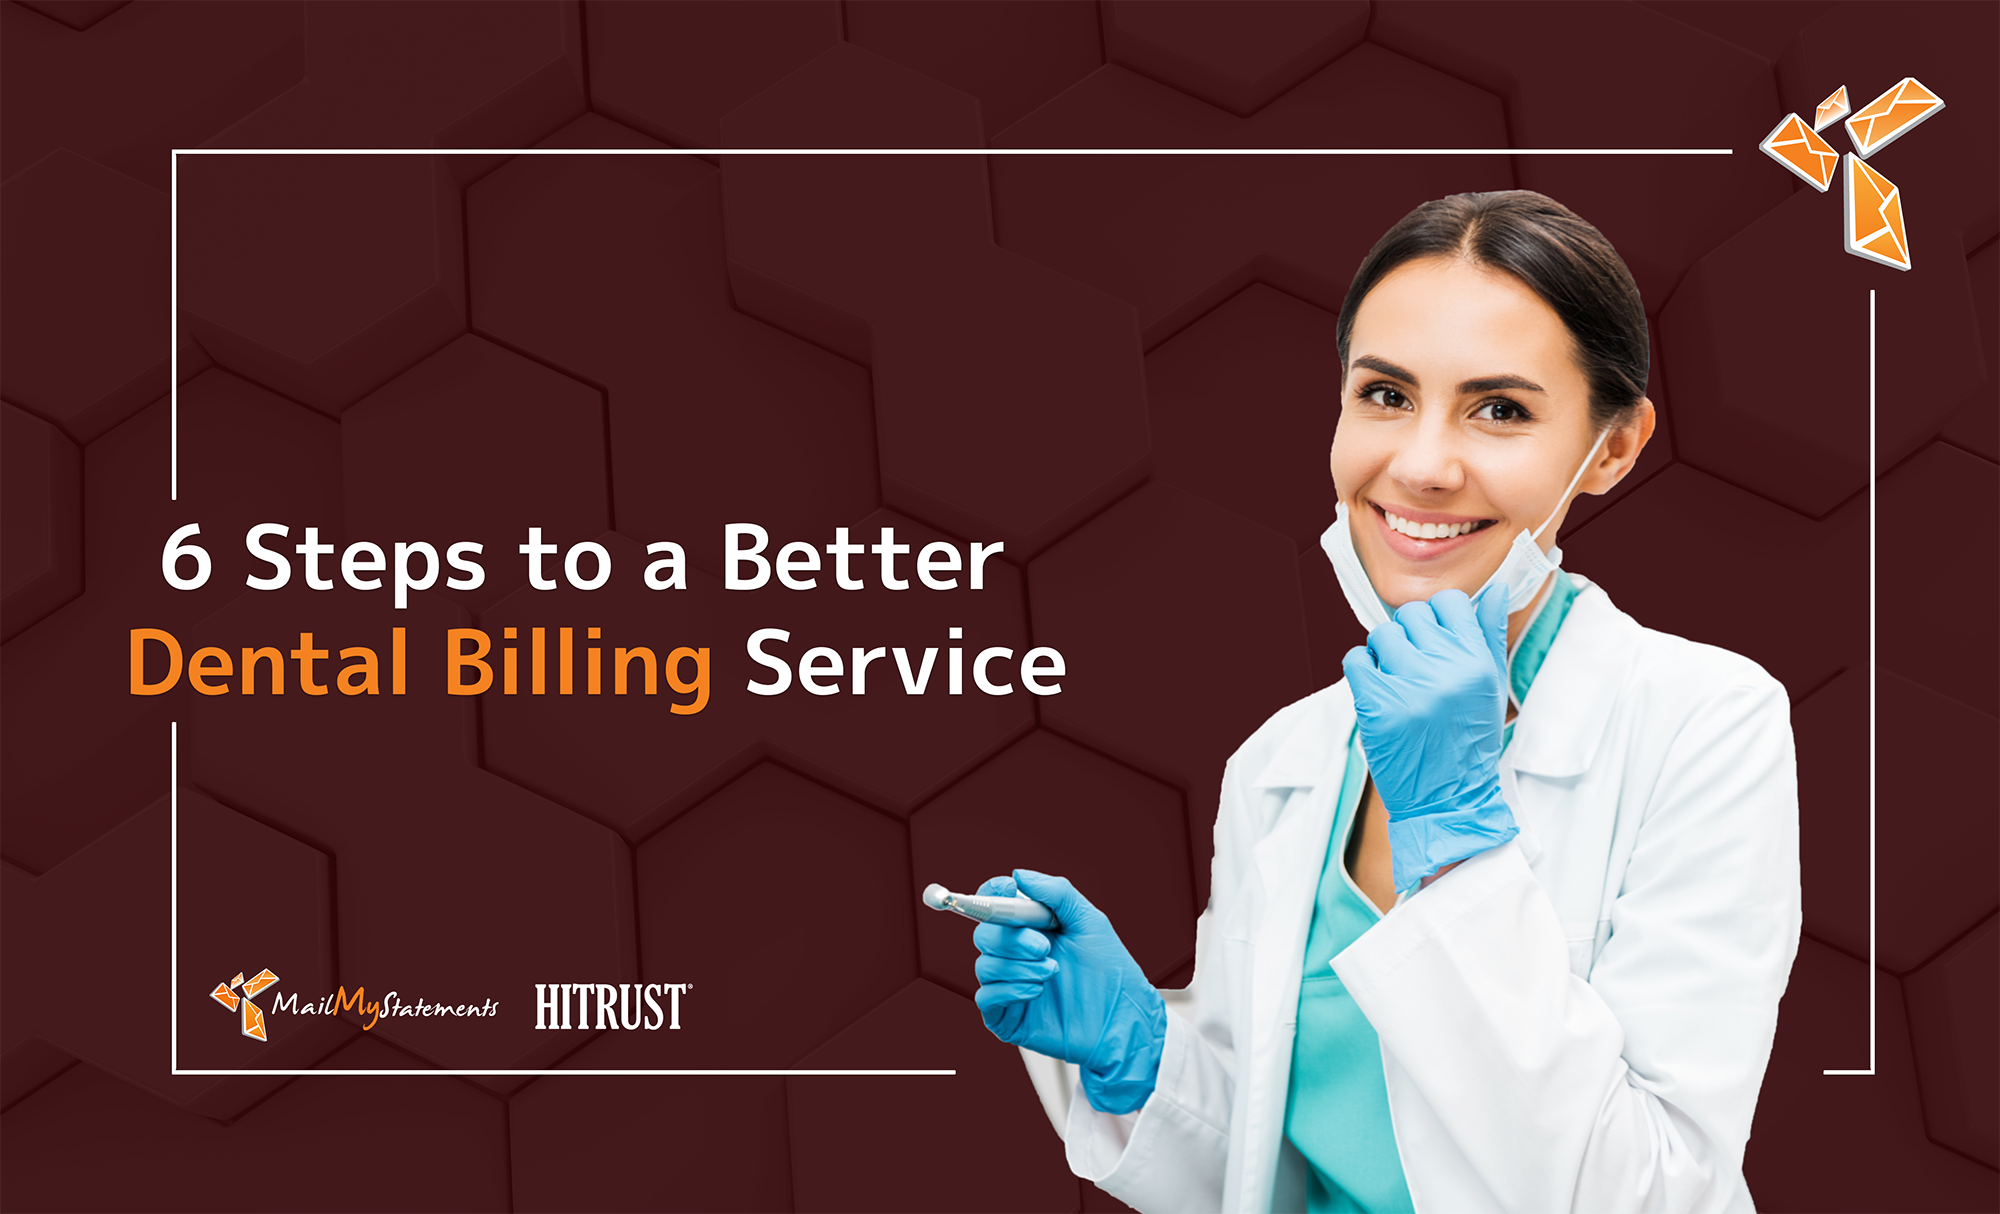 6 Steps to a Better Dental Billing Service